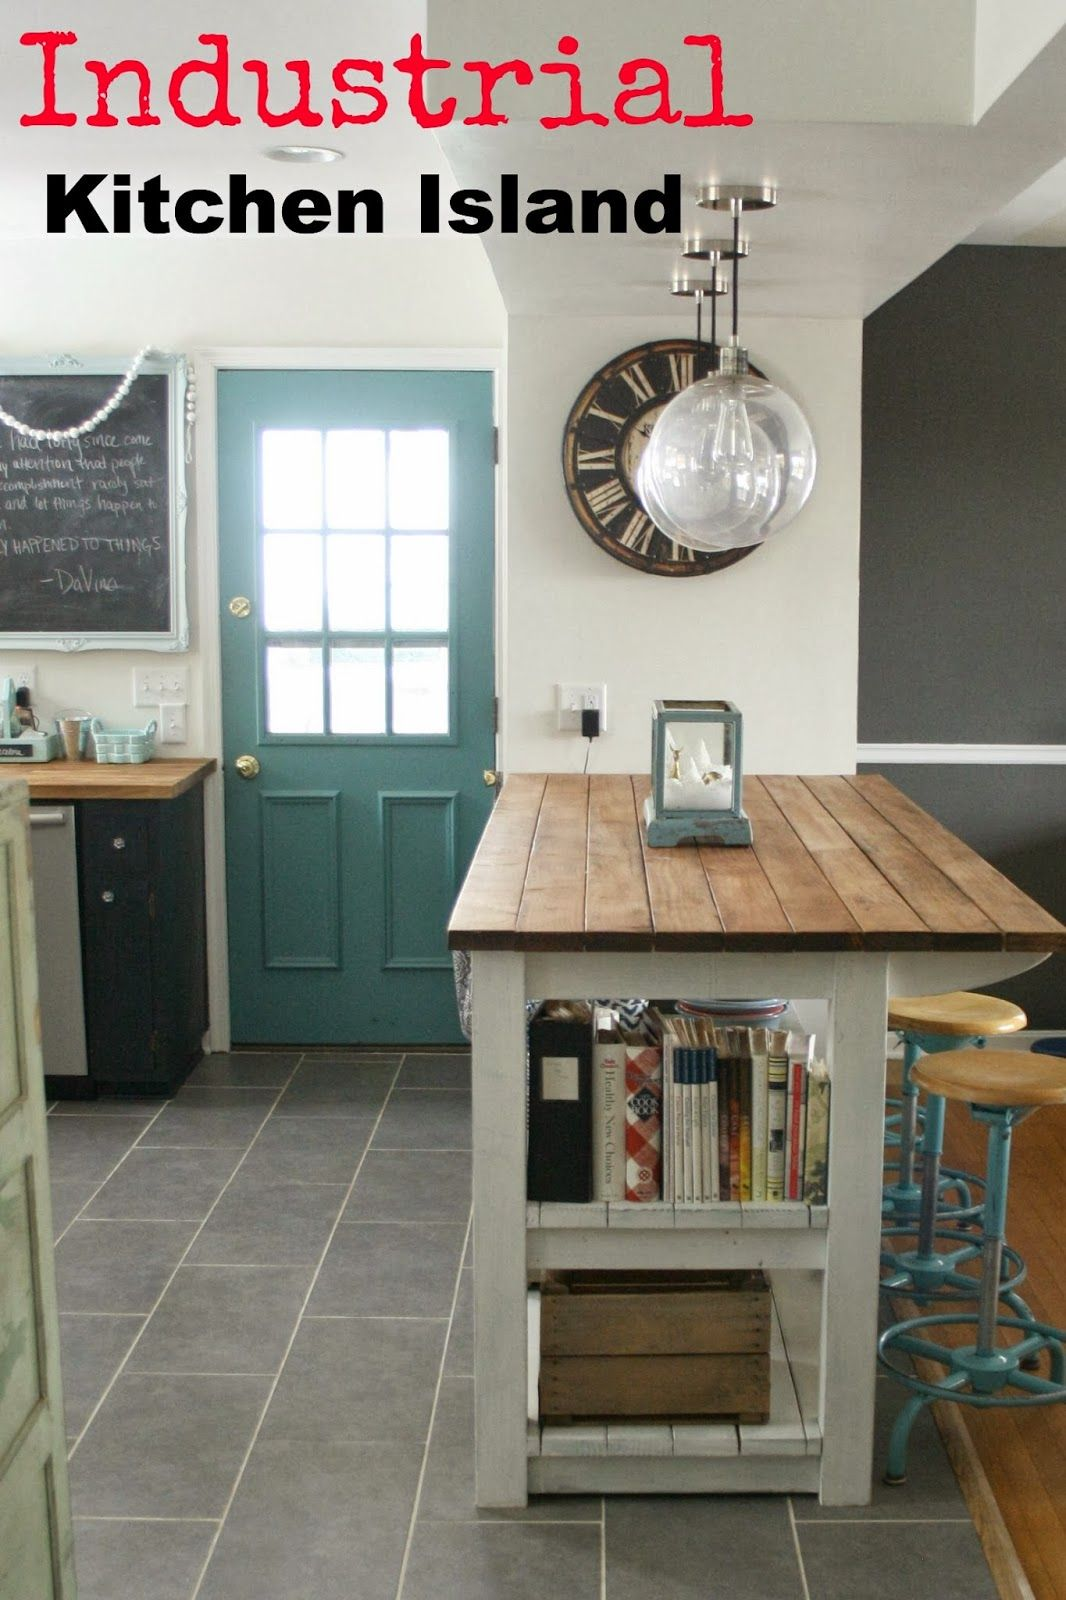 Primitive u proper my industrial look kitchen island and that time